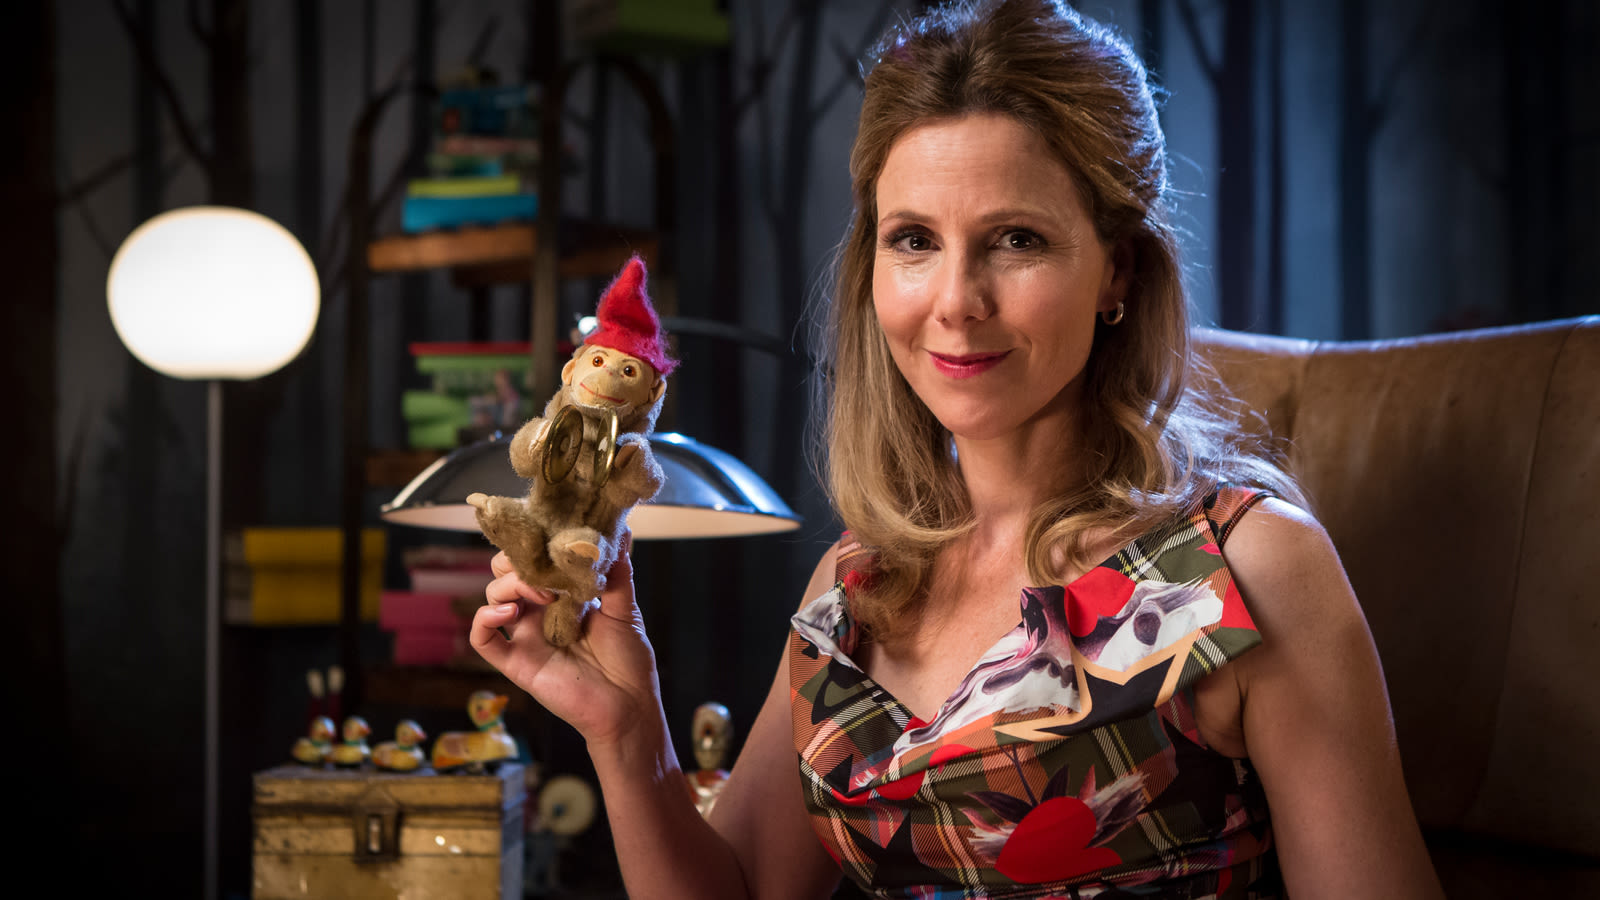 , sally phillips actress, sally phillips dhs, sally phillips facebook